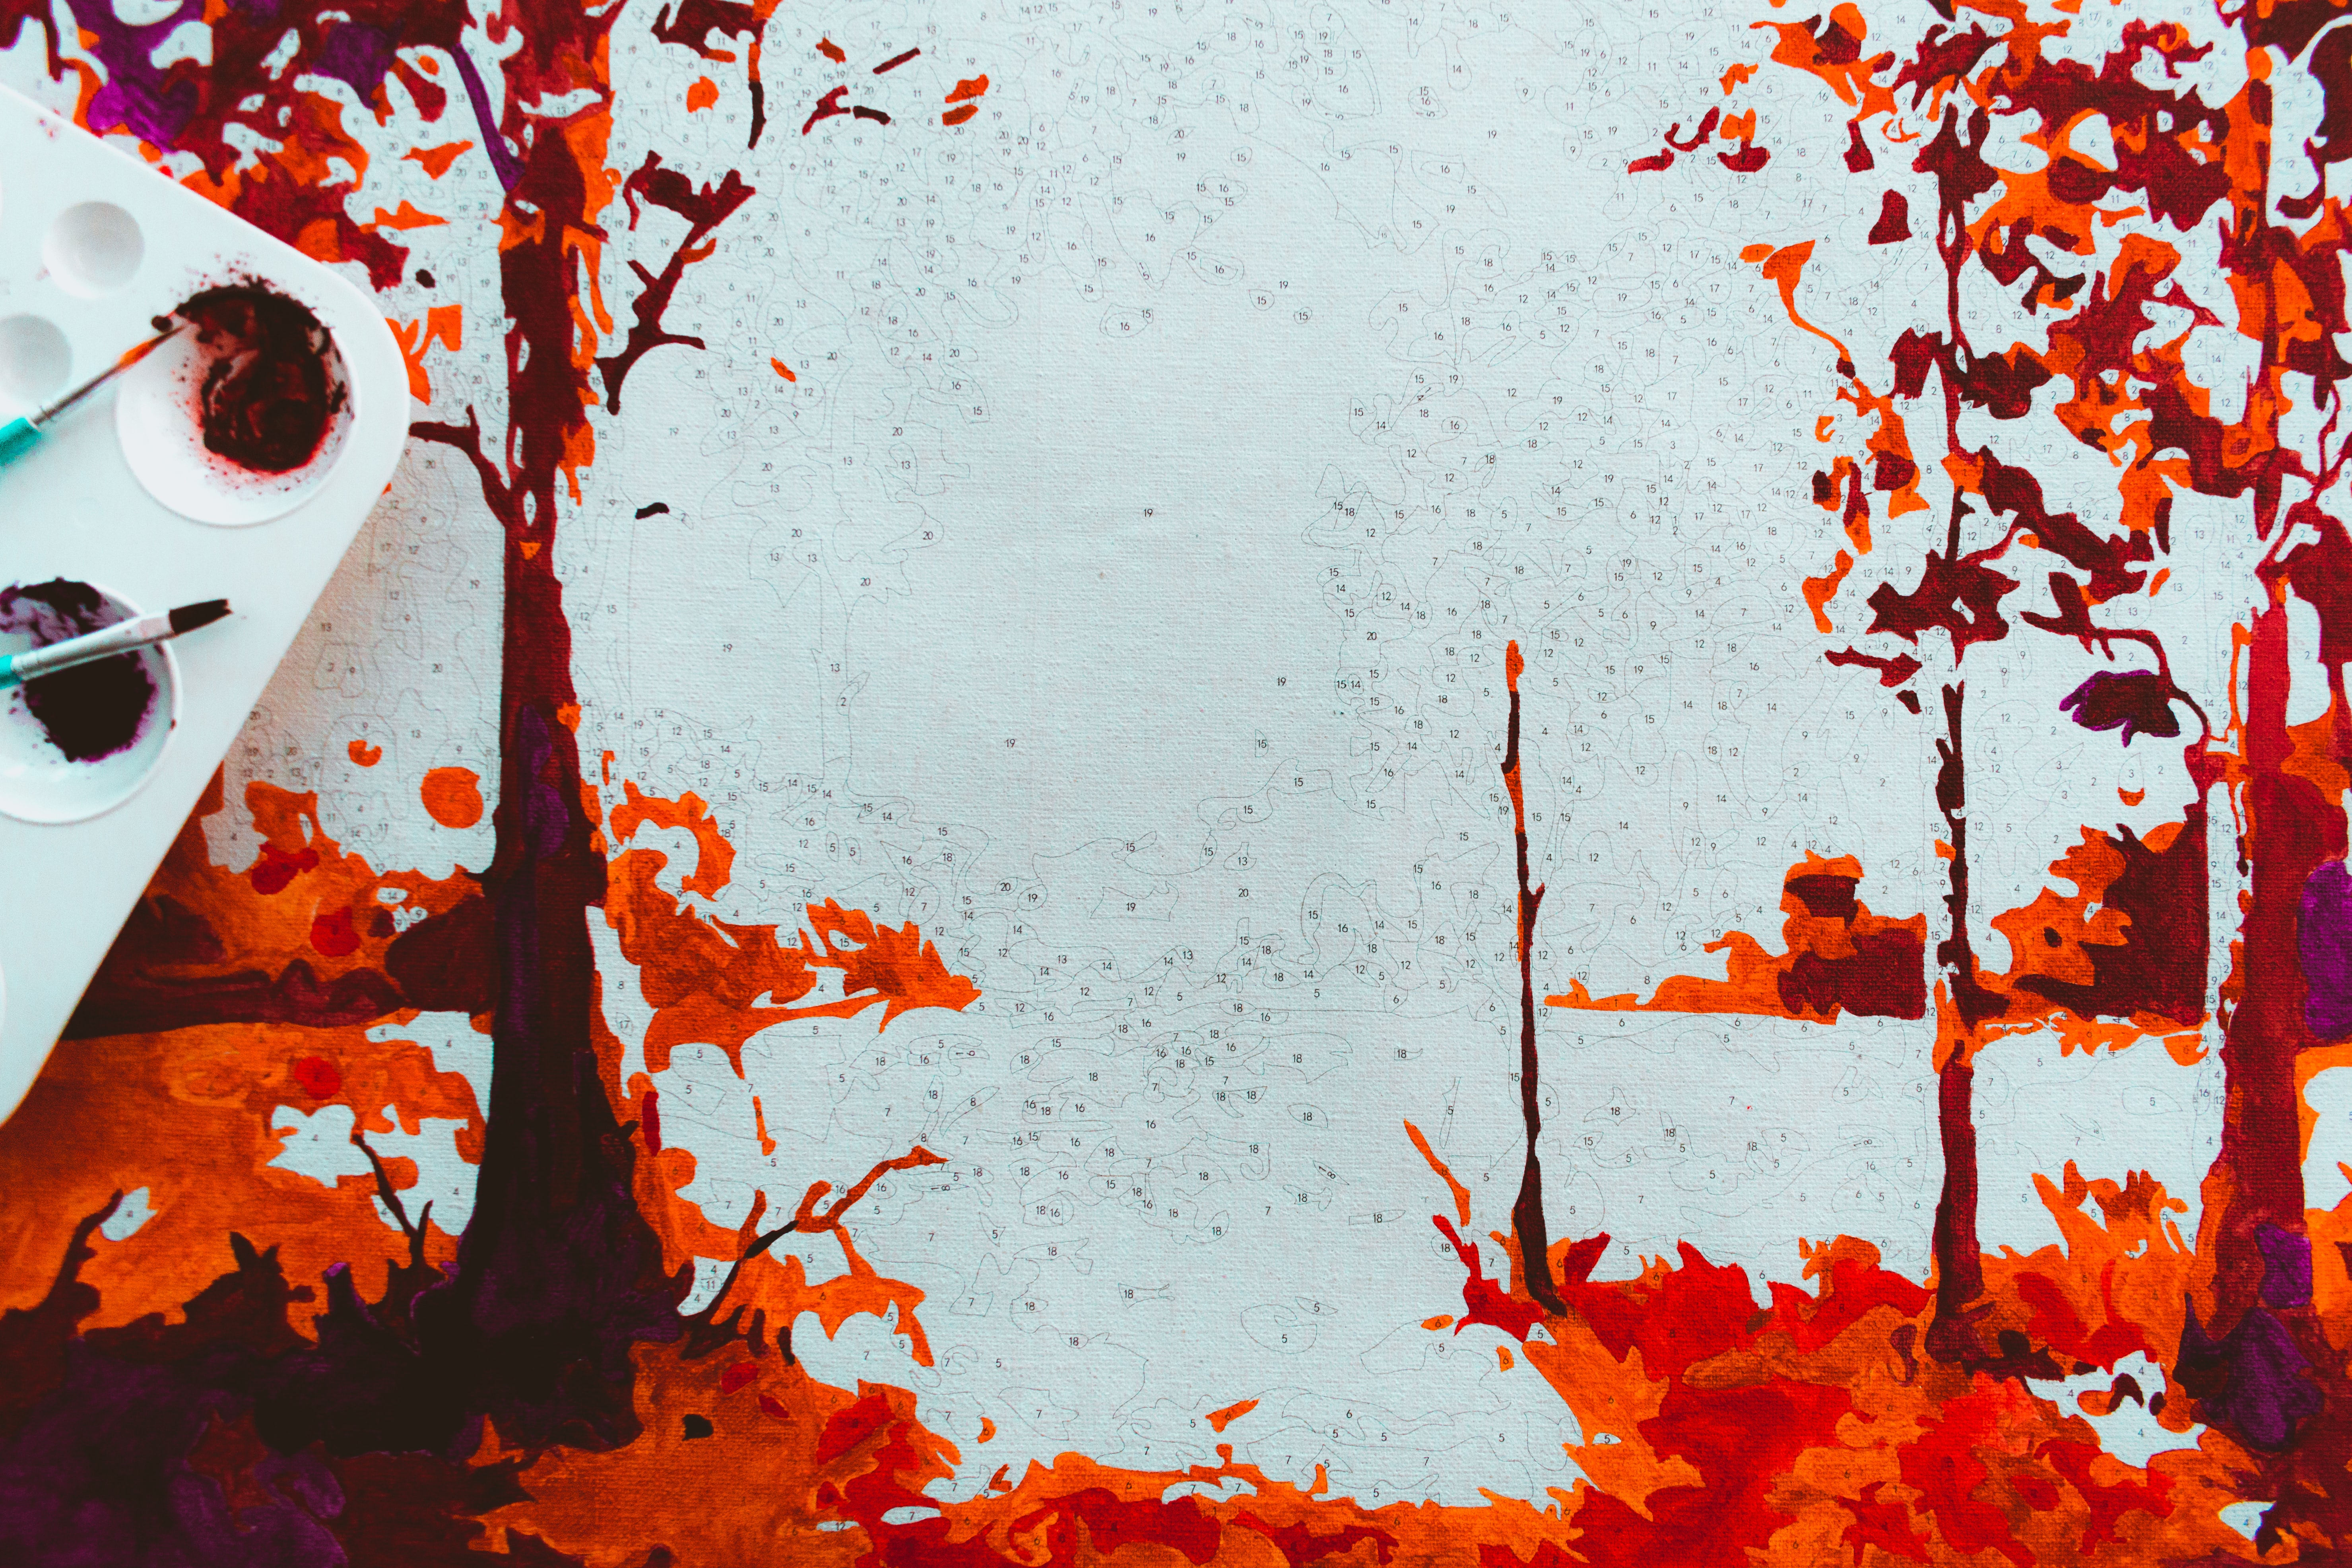 trees and body of water painting